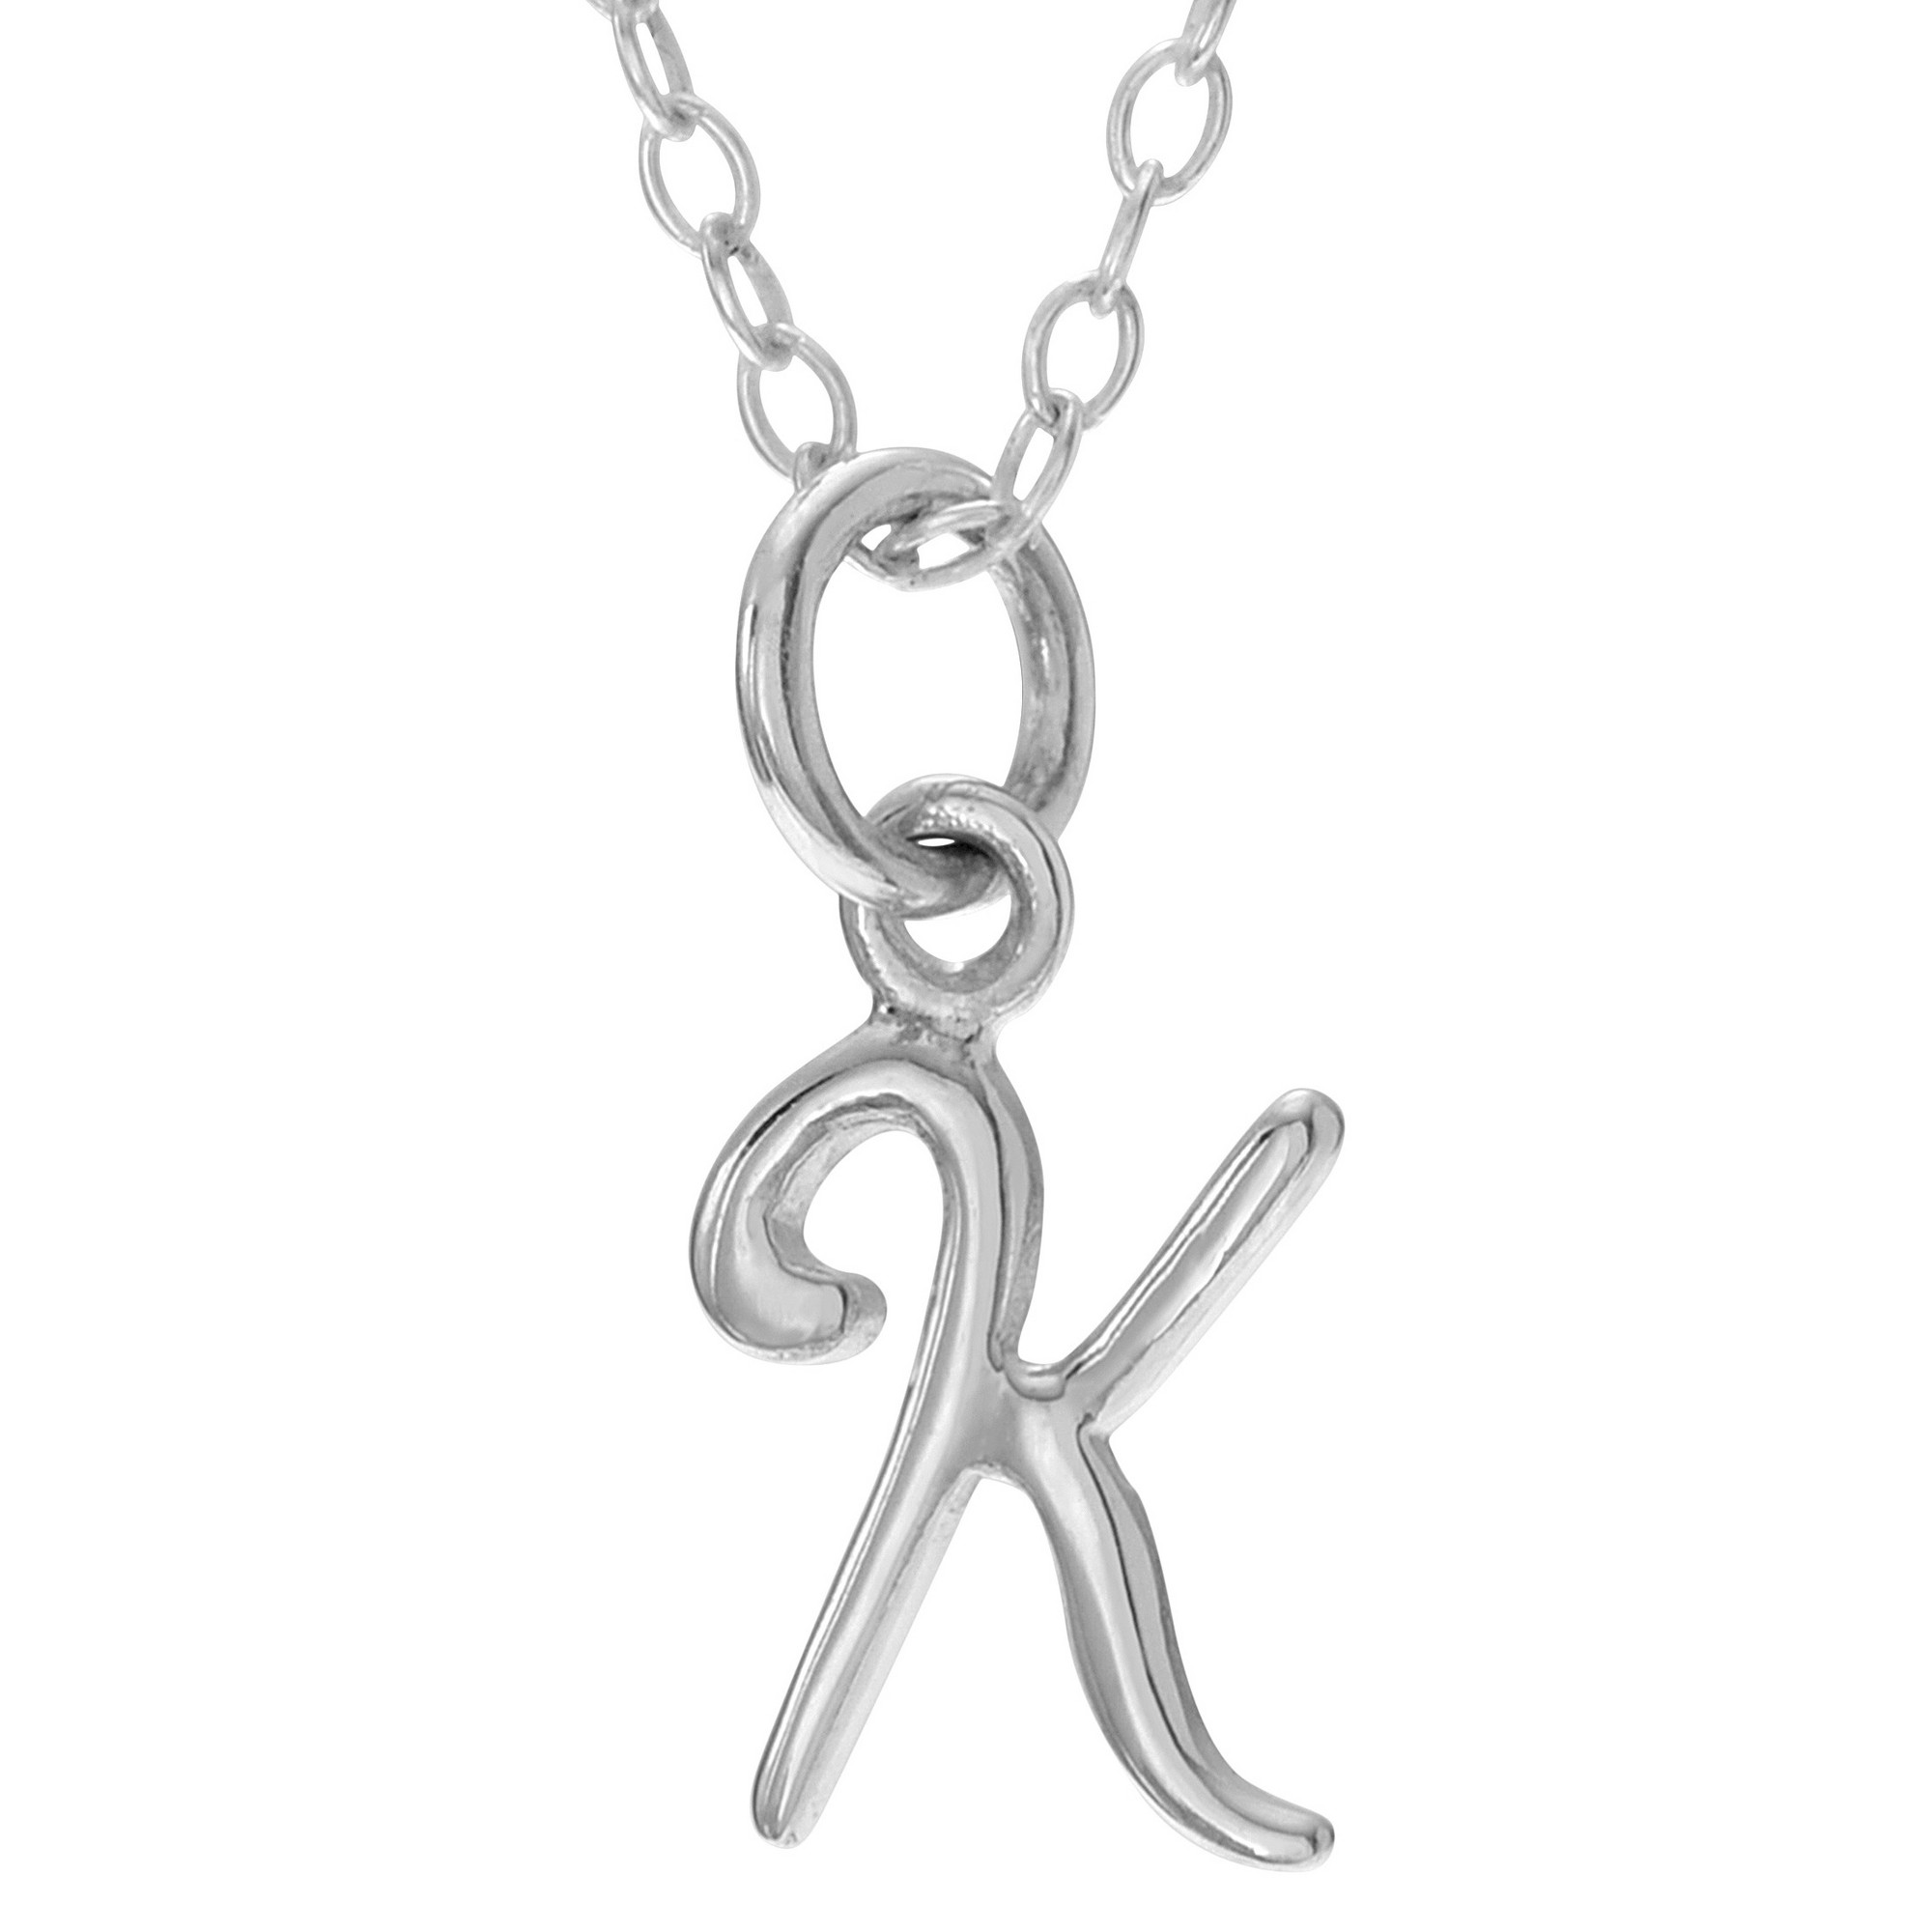 b3890333c74651 Women's Journee Collection Initial K Charm Pendant Necklace in Sterling  Silver - Silver (18), Silver K